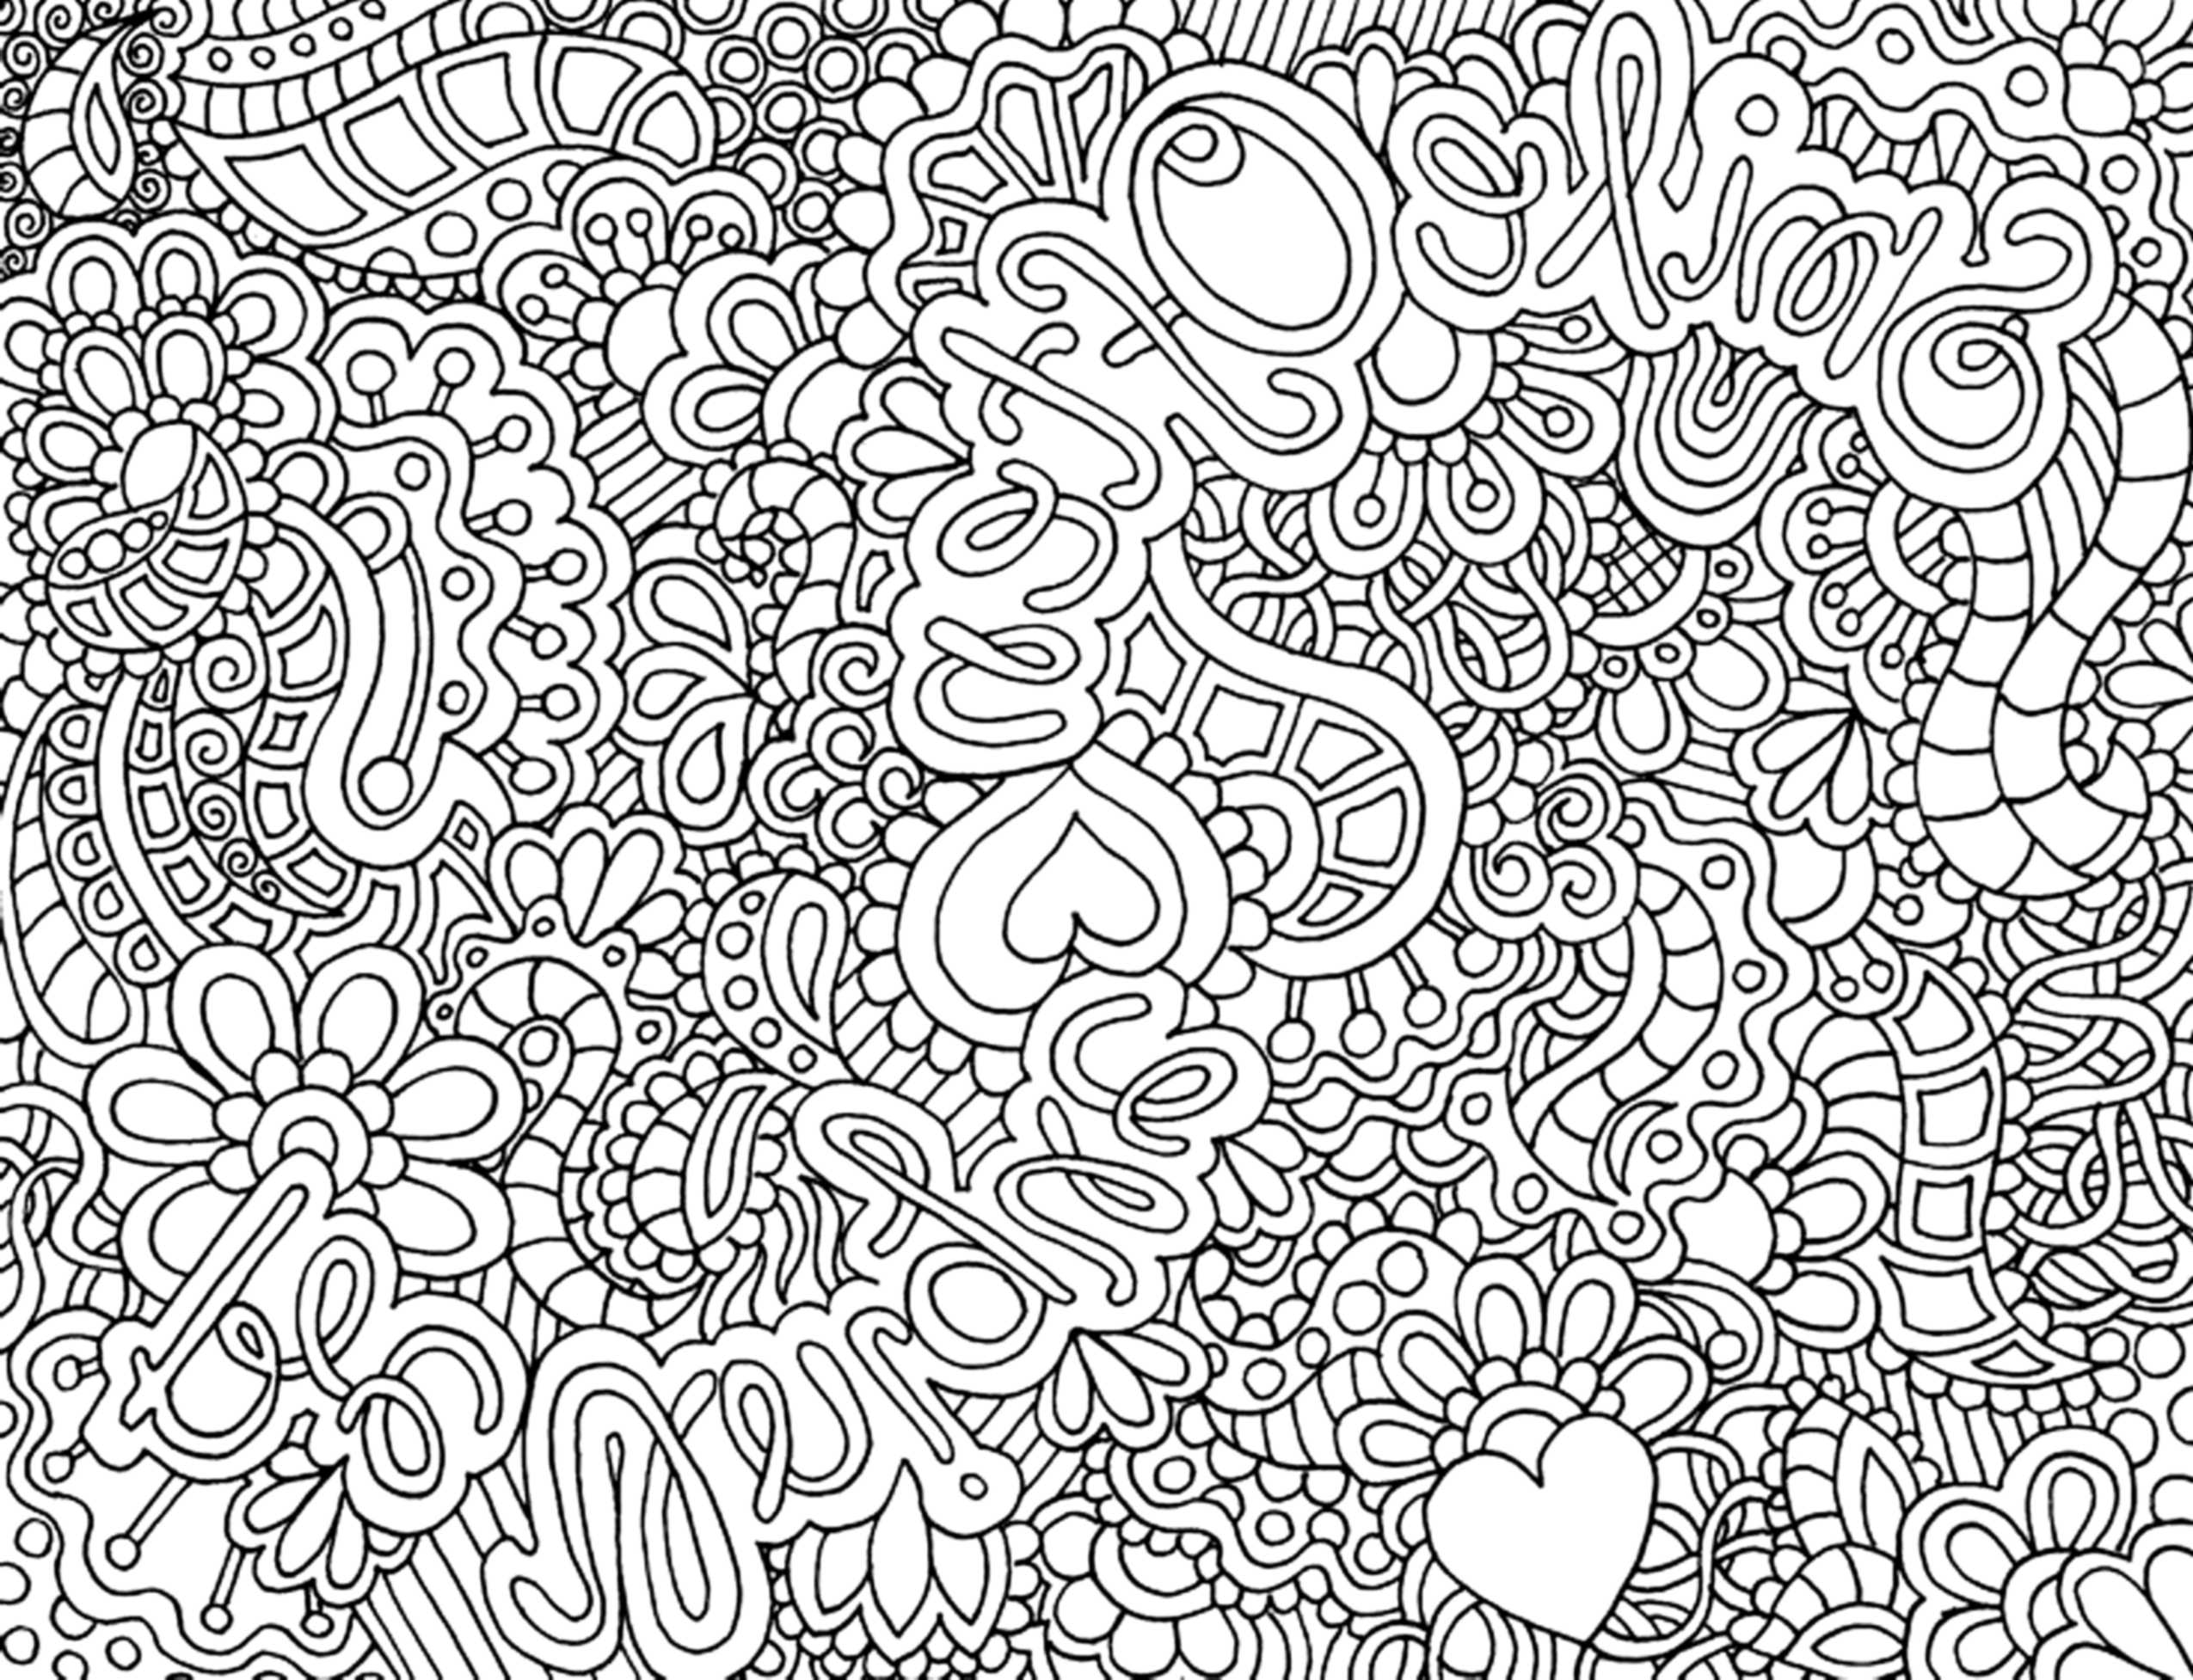 Complex Flower Coloring Pages for Adults - Printable Kids ...